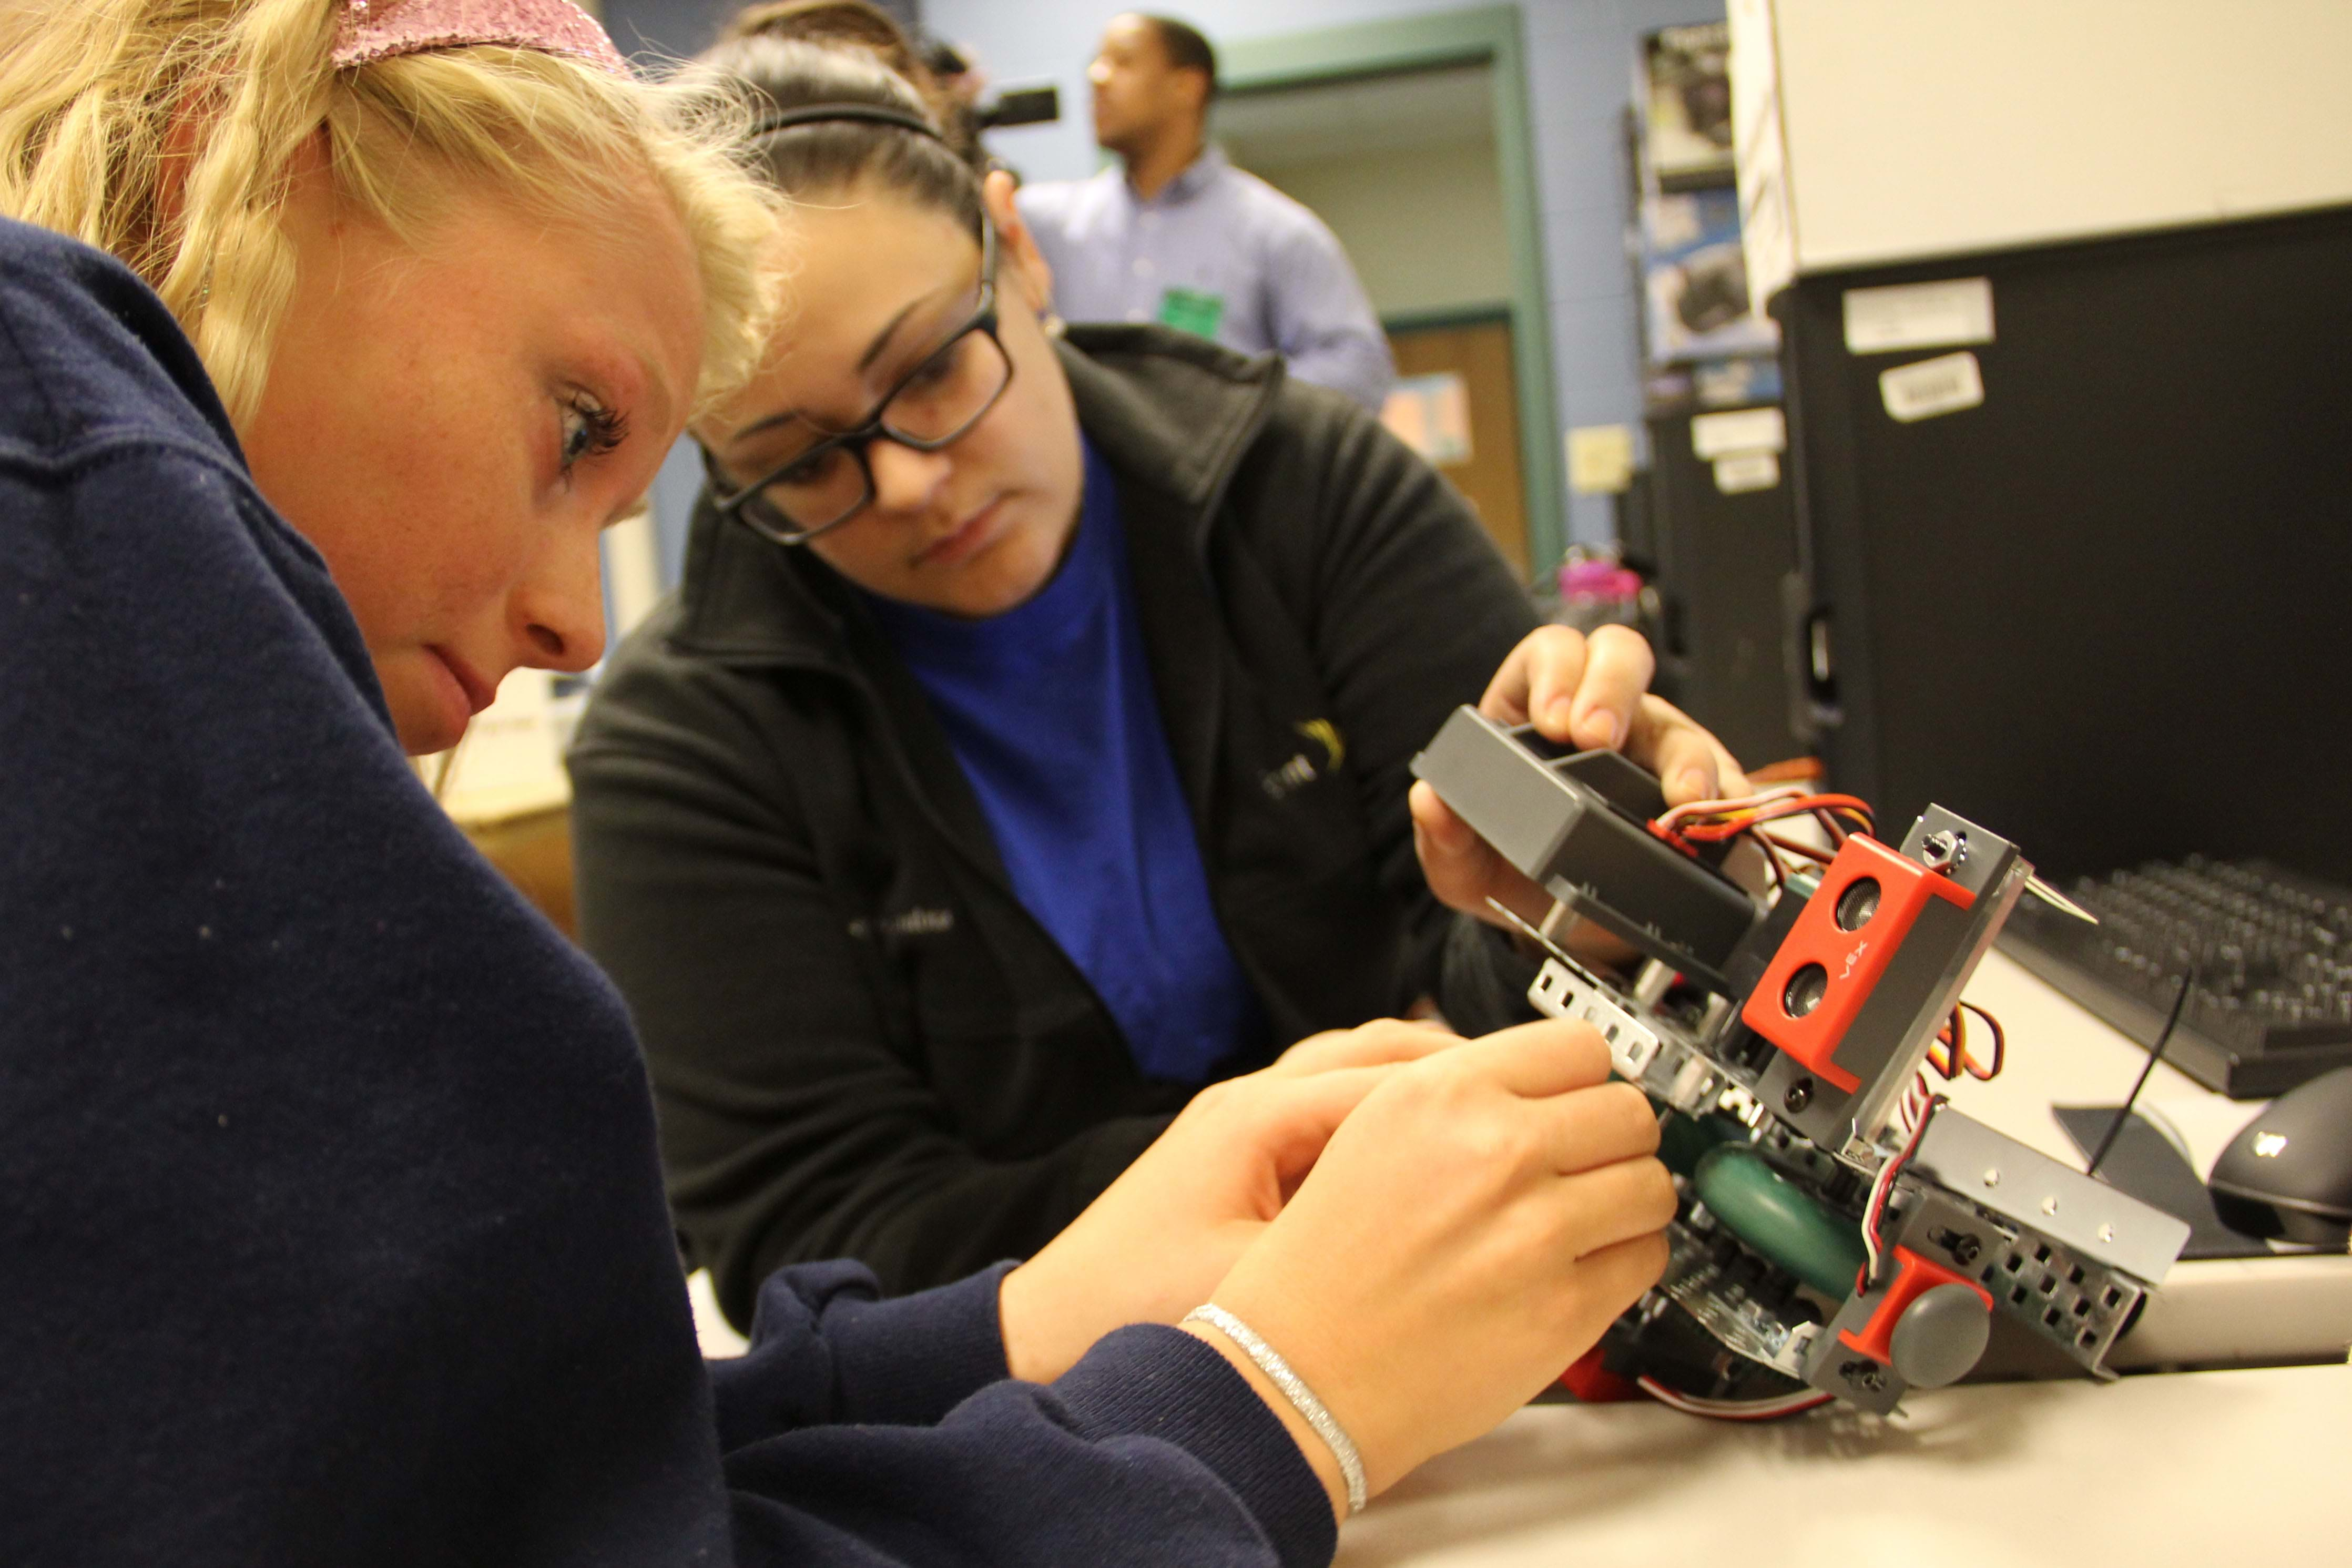 Rural Illinois Schools Offer New STEM Education Programs with Grant Funding from